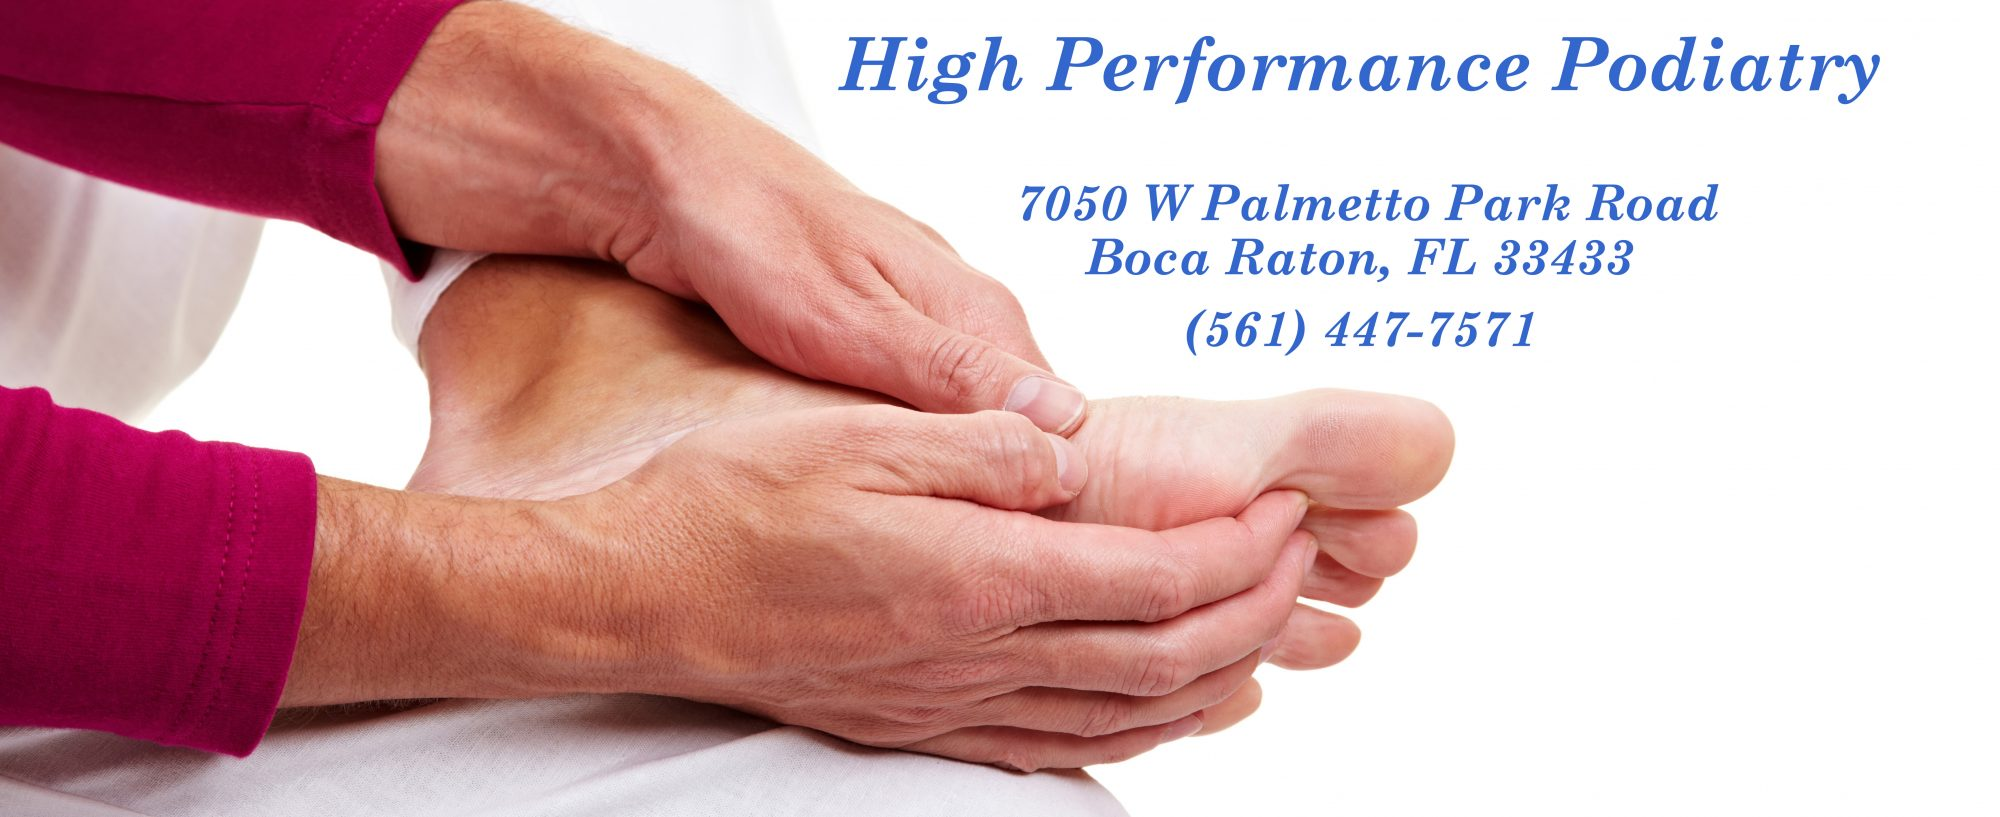 High Performance Podiatry